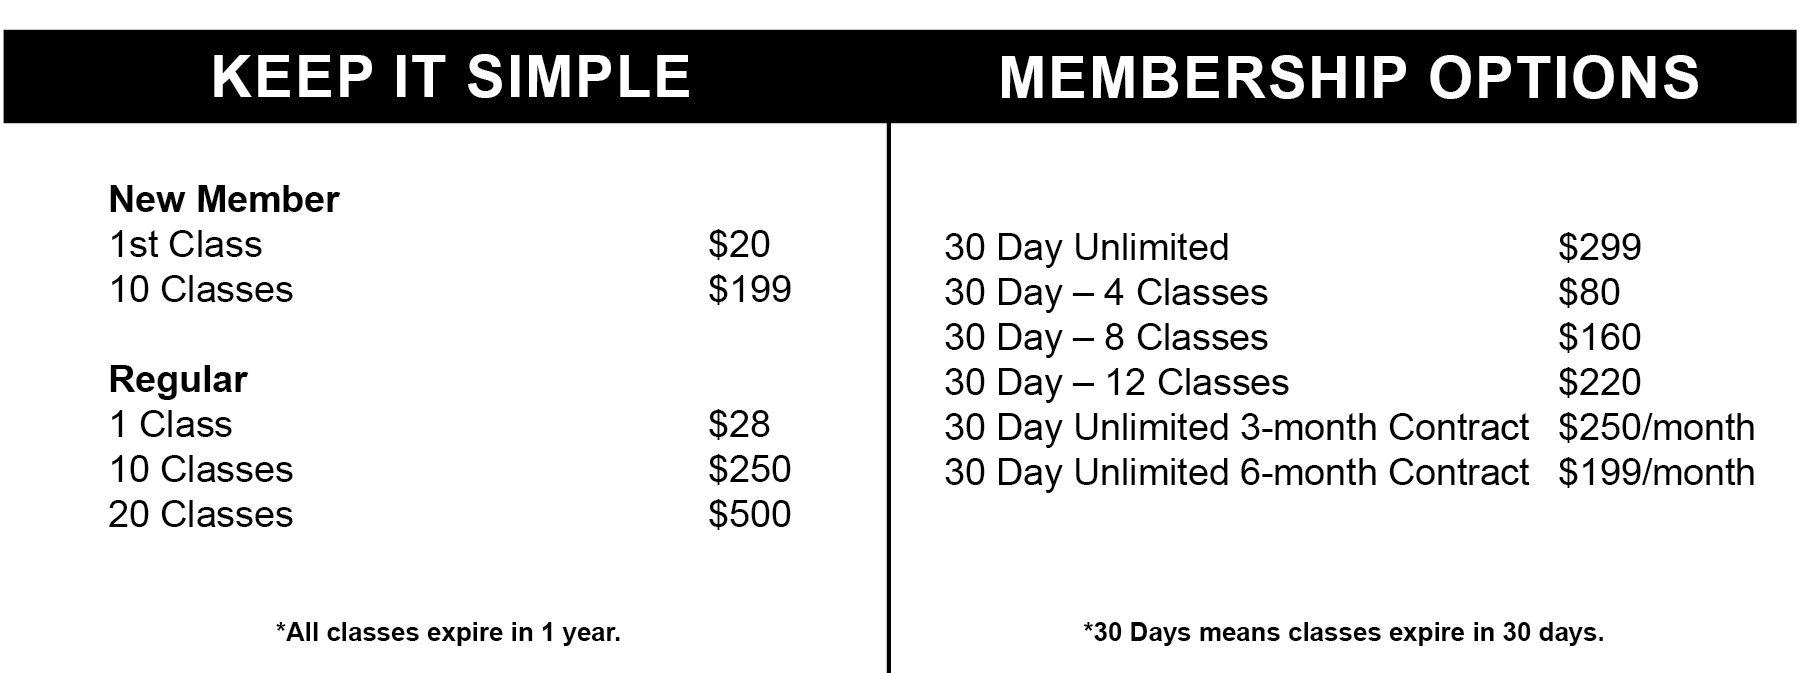 cpppostcardpricing copy.png